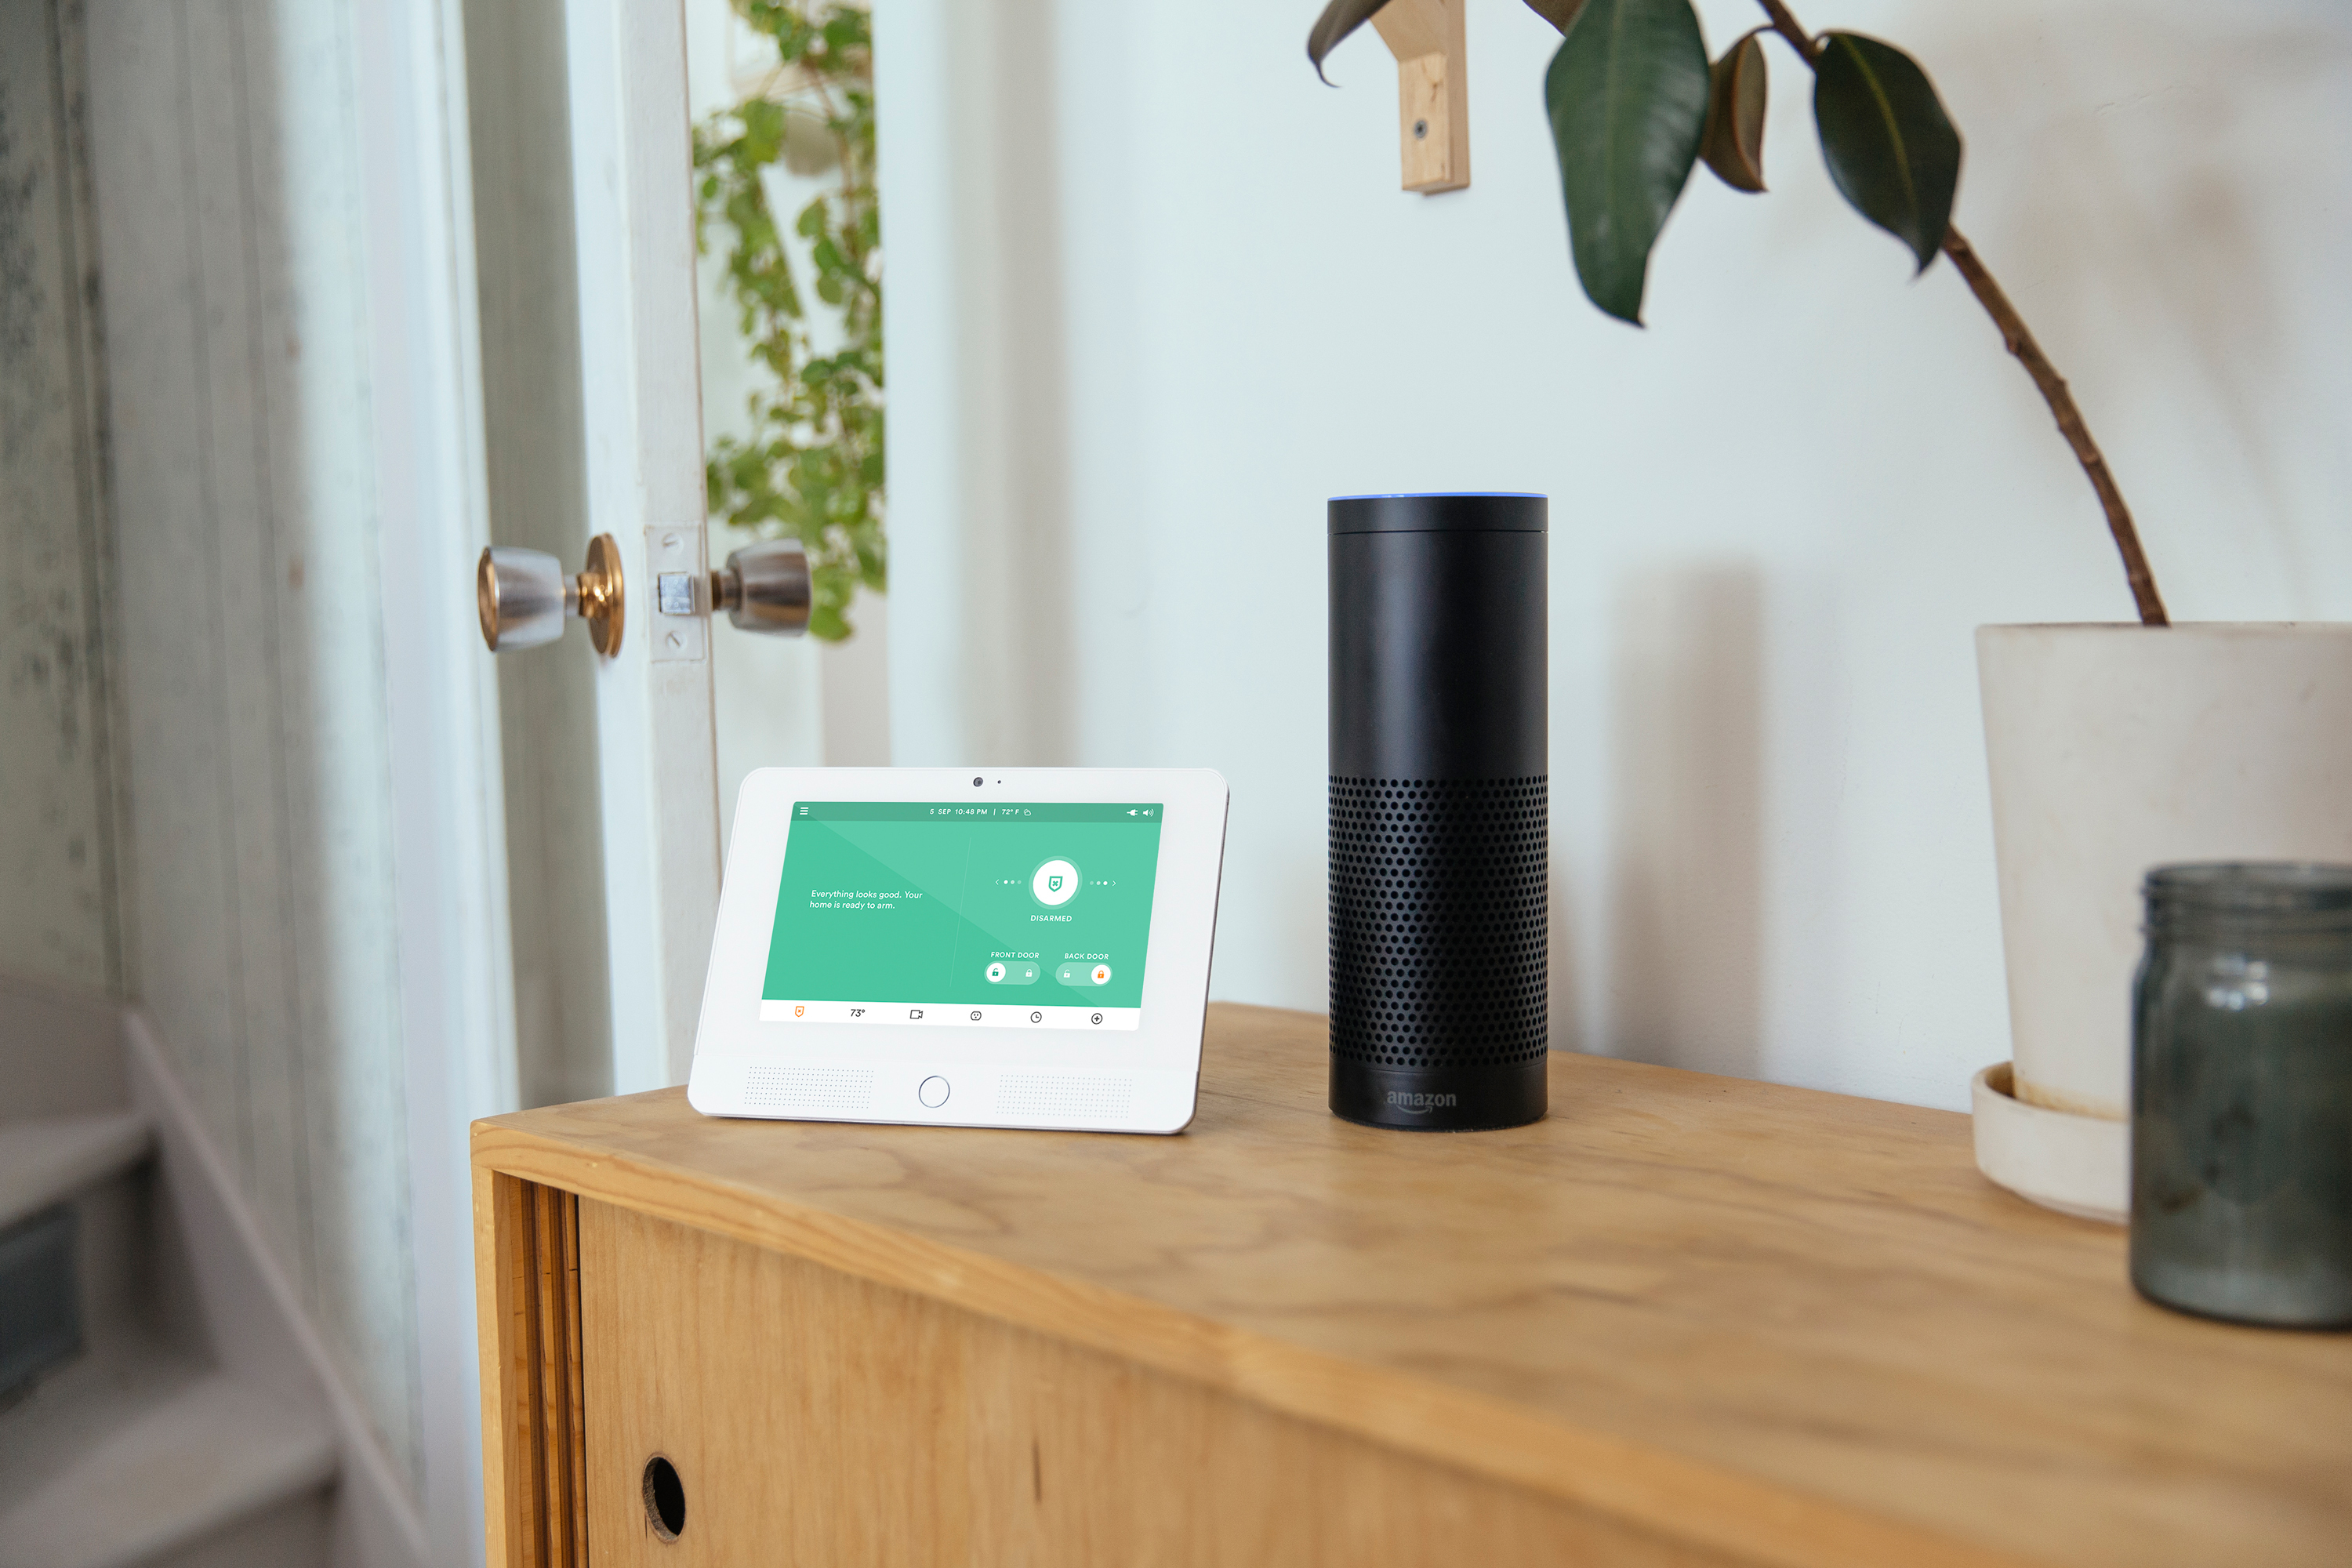 vivint smart home launches integration with amazon echo to create comprehensive voice. Black Bedroom Furniture Sets. Home Design Ideas